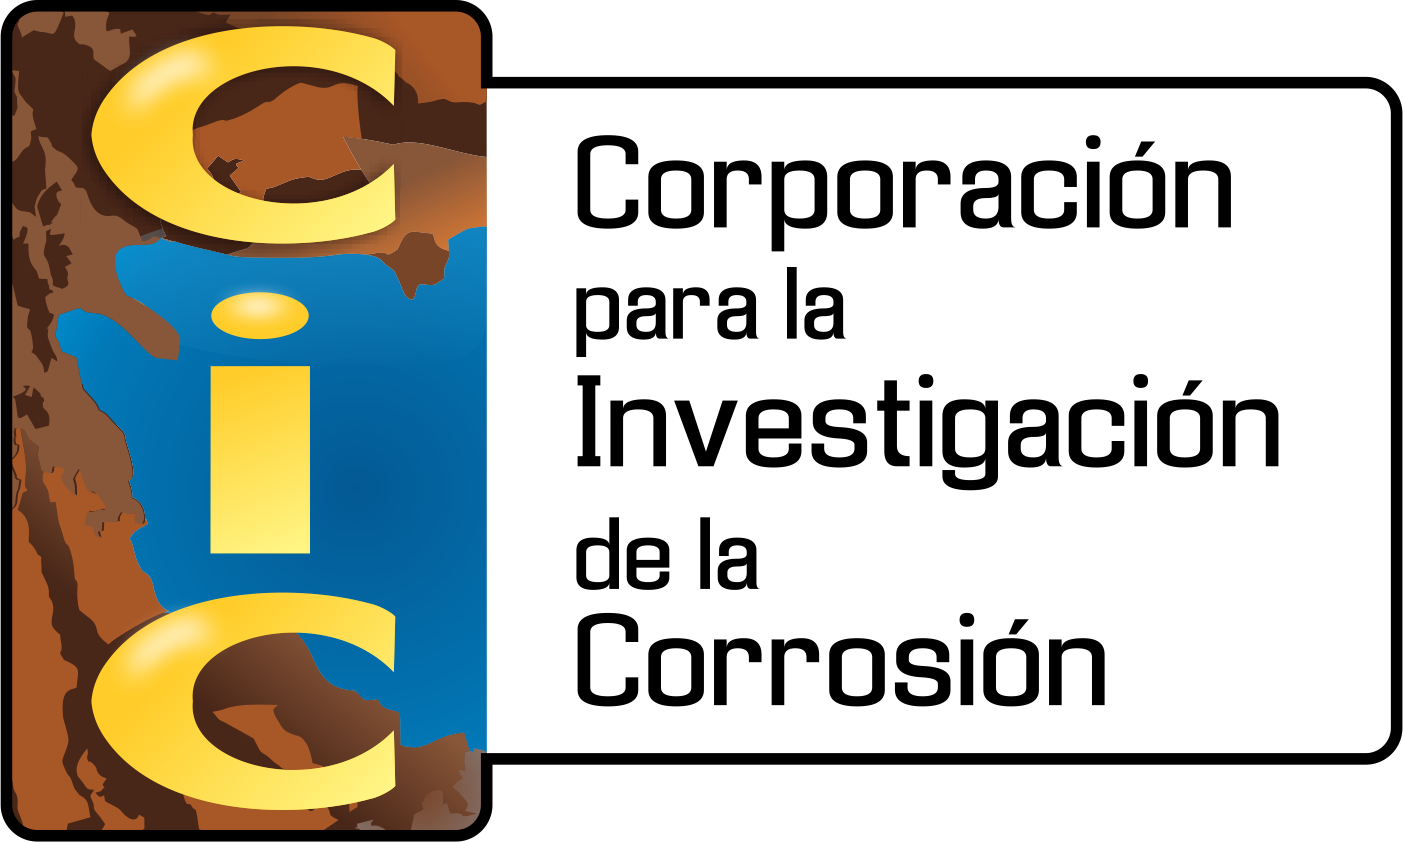 Logo_CIC_Corrosion.png